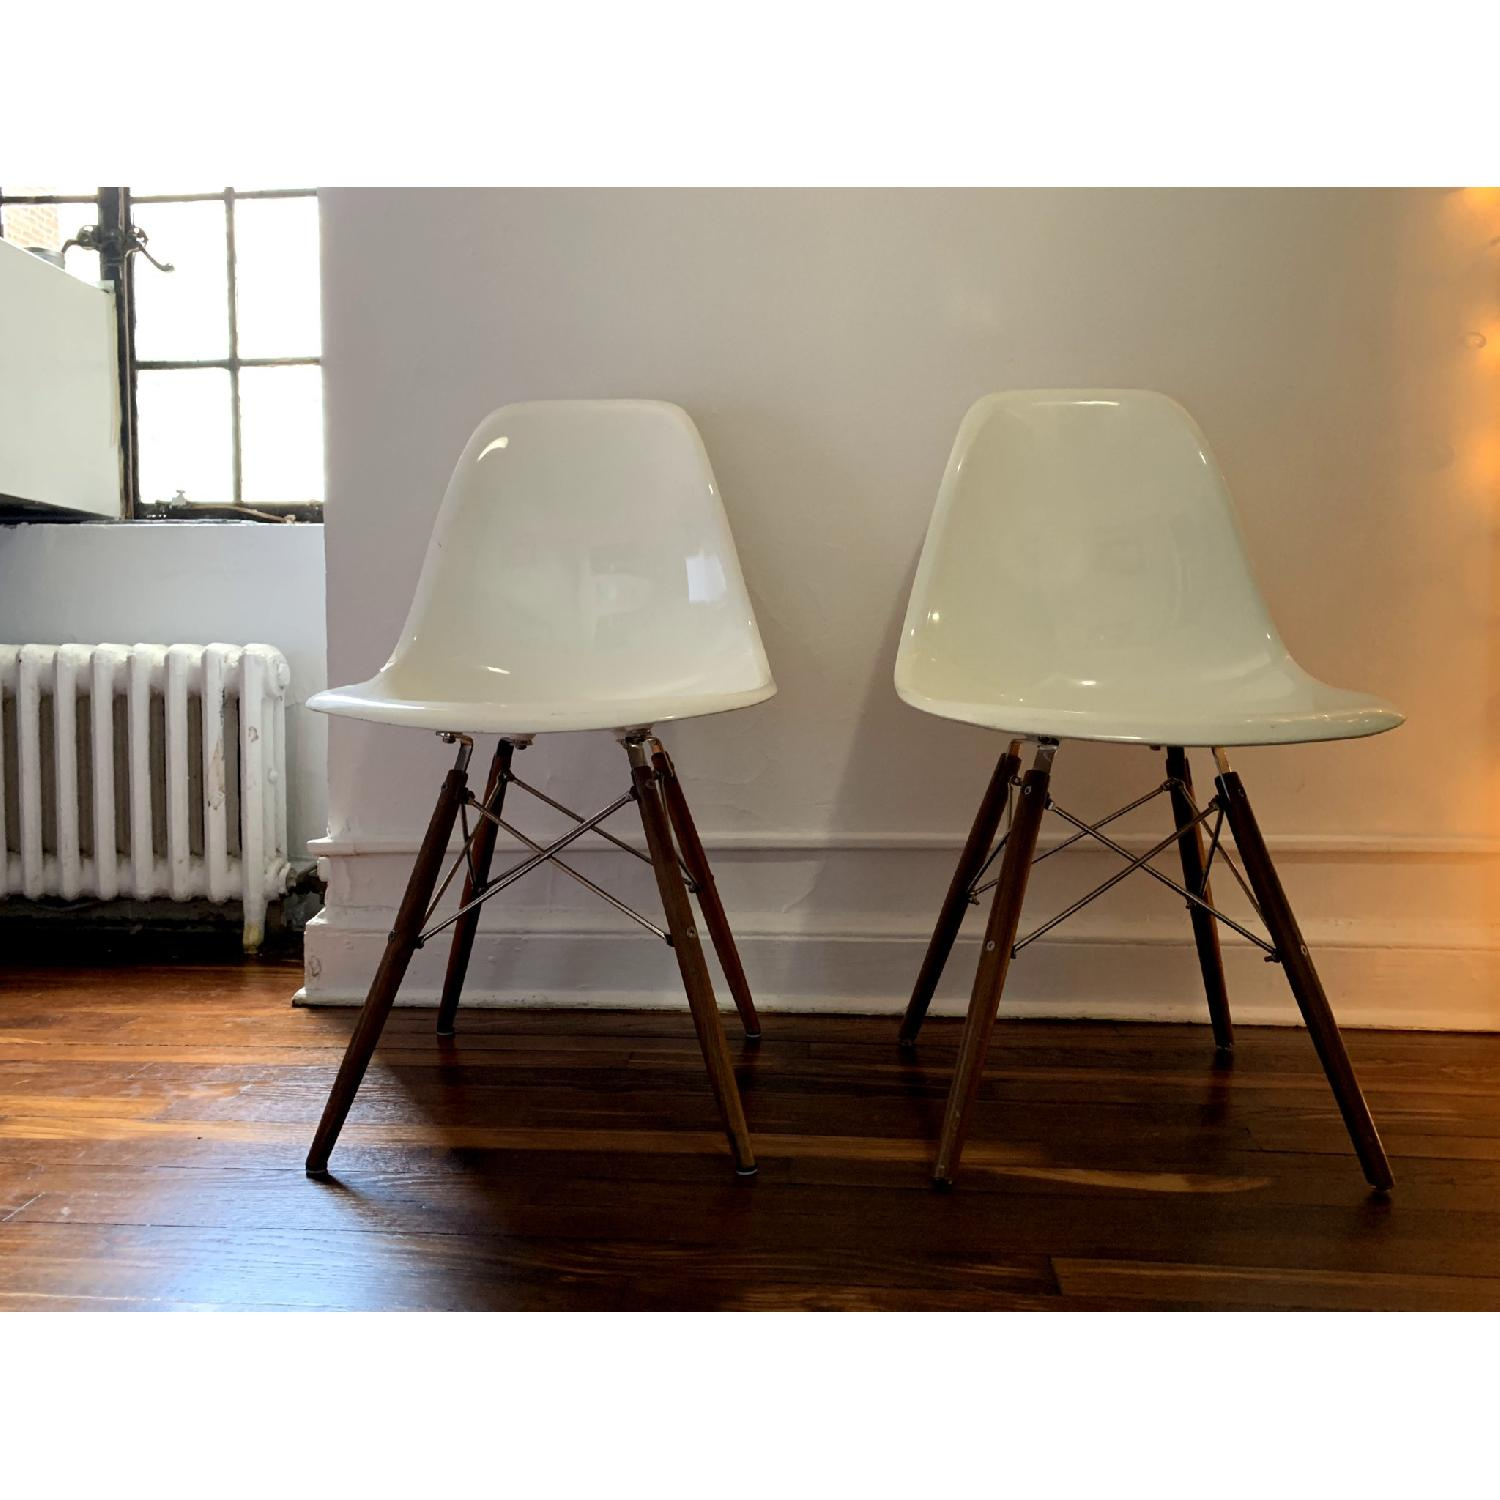 Organic Modernism Eames-Style Side Chairs - image-1